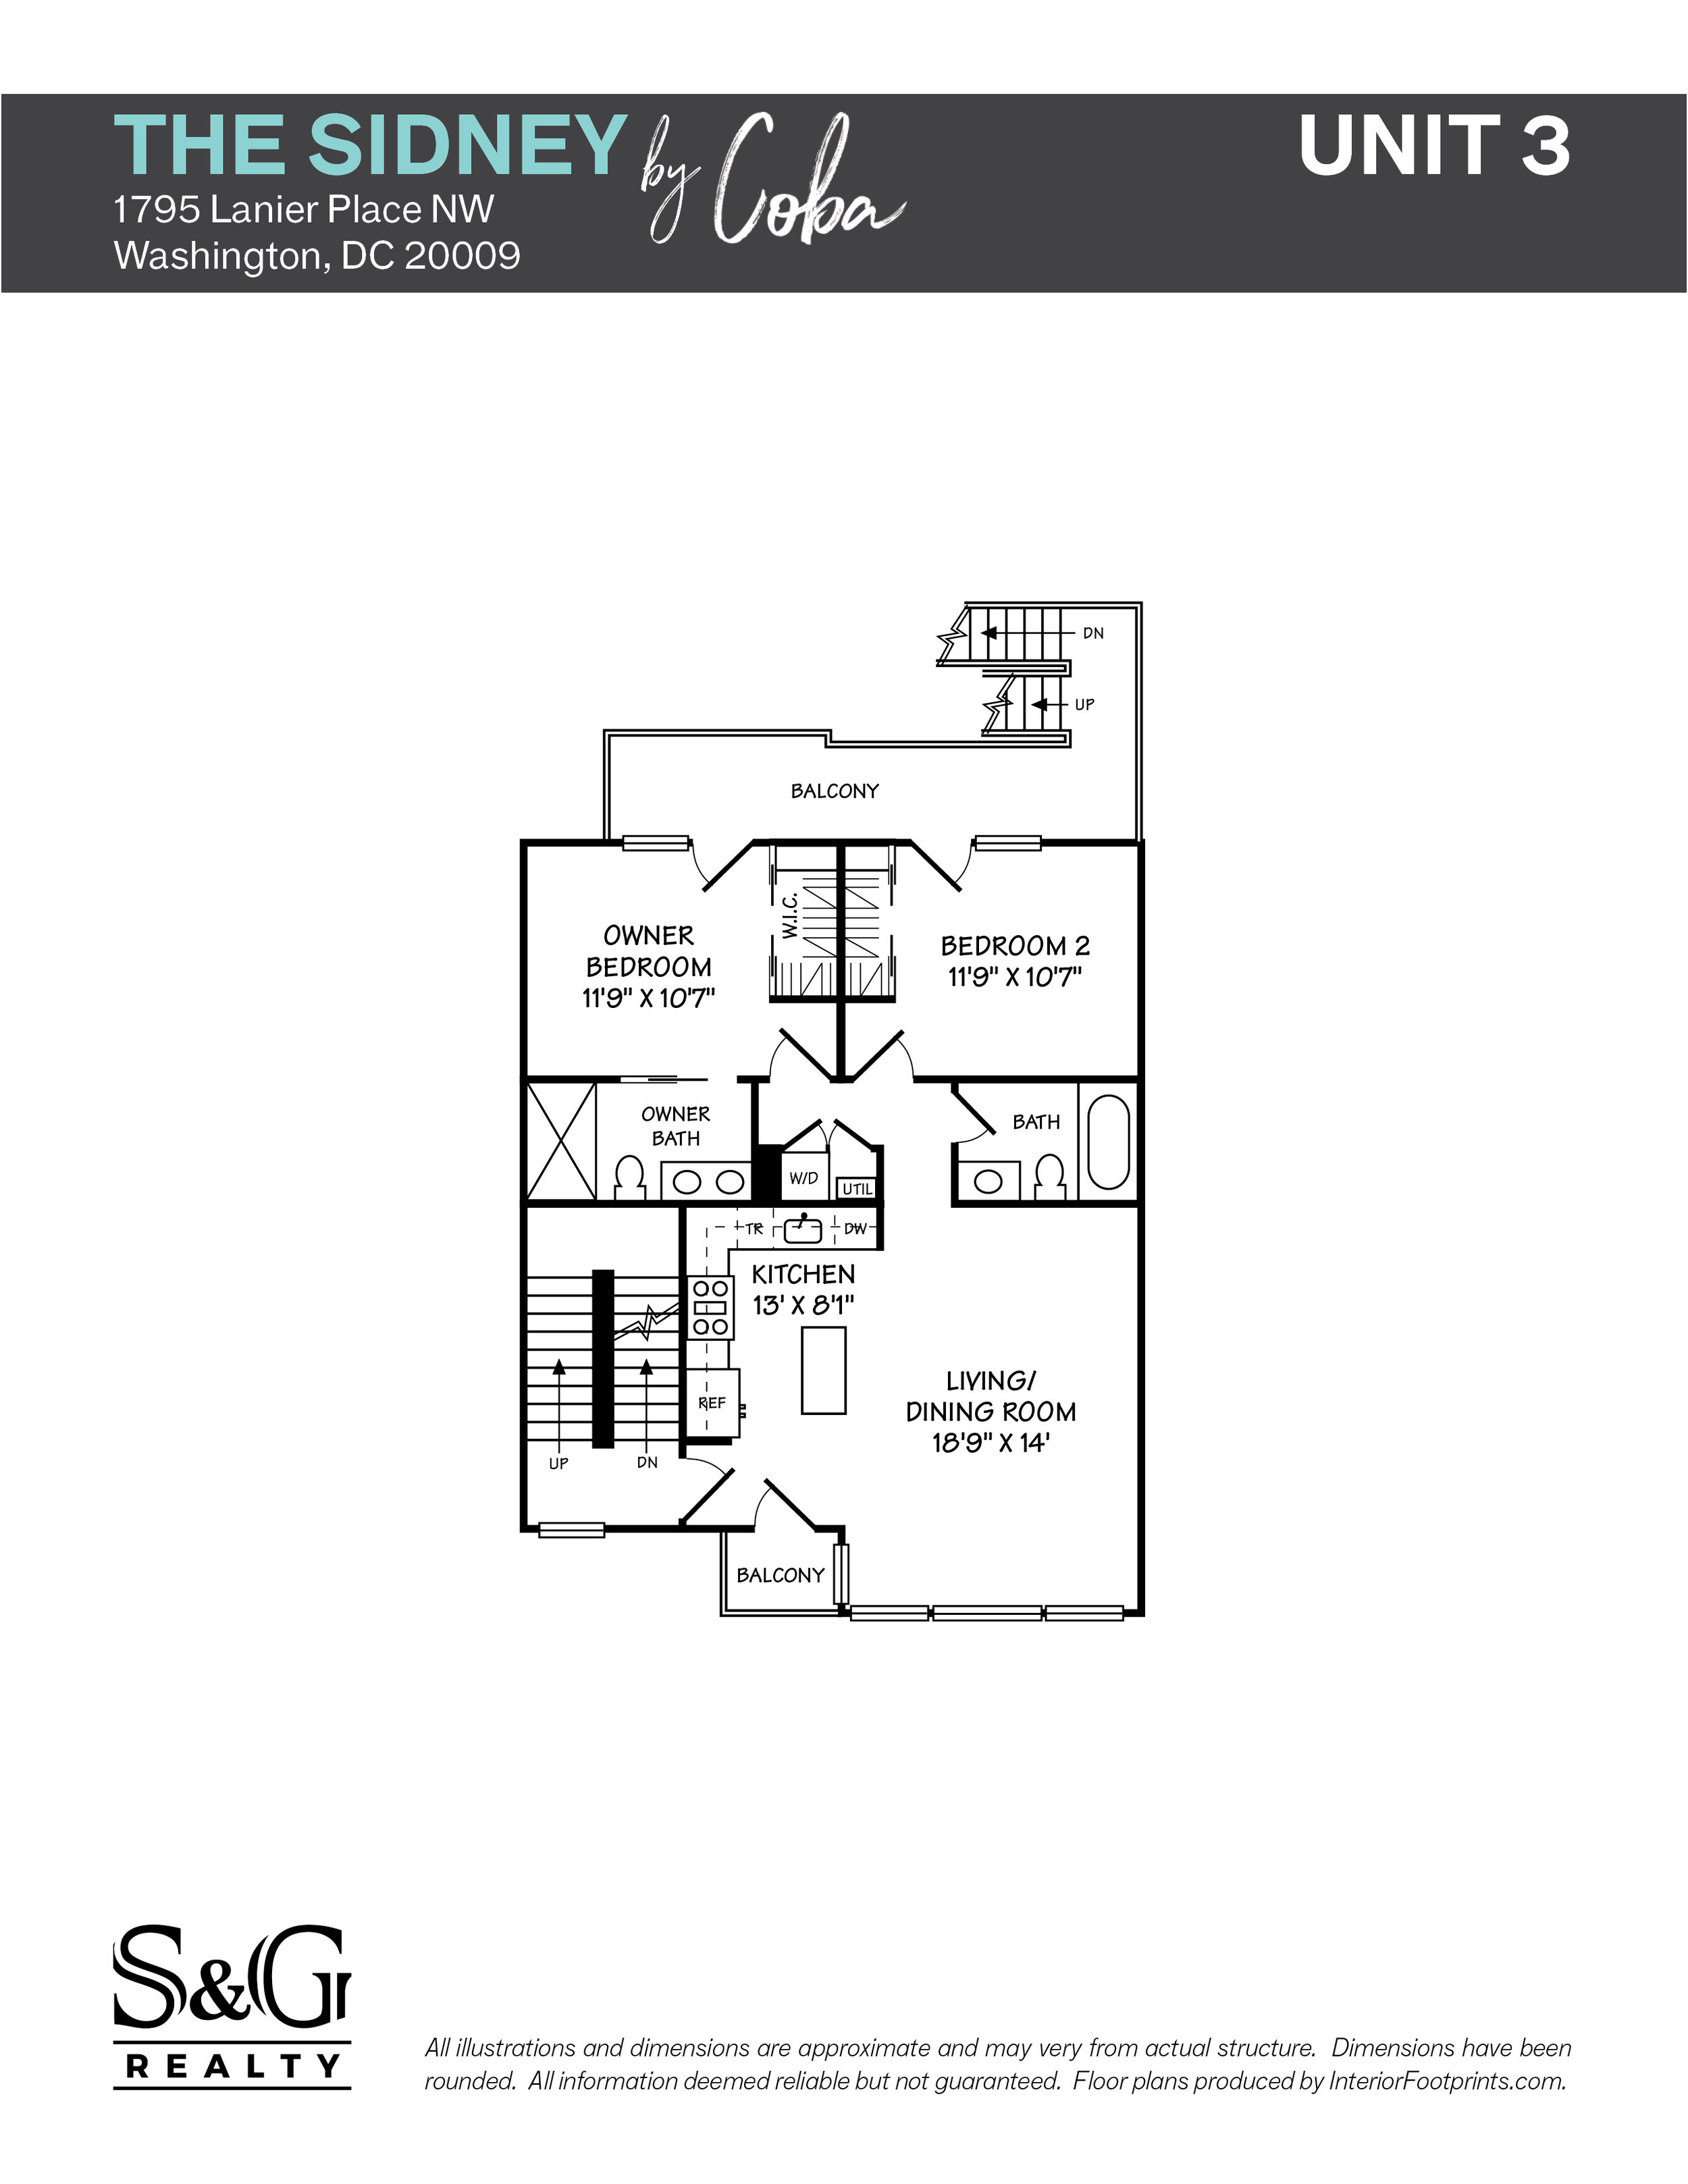 1795 Lanier Pl NW - Floor Plans - Unit 3.jpg